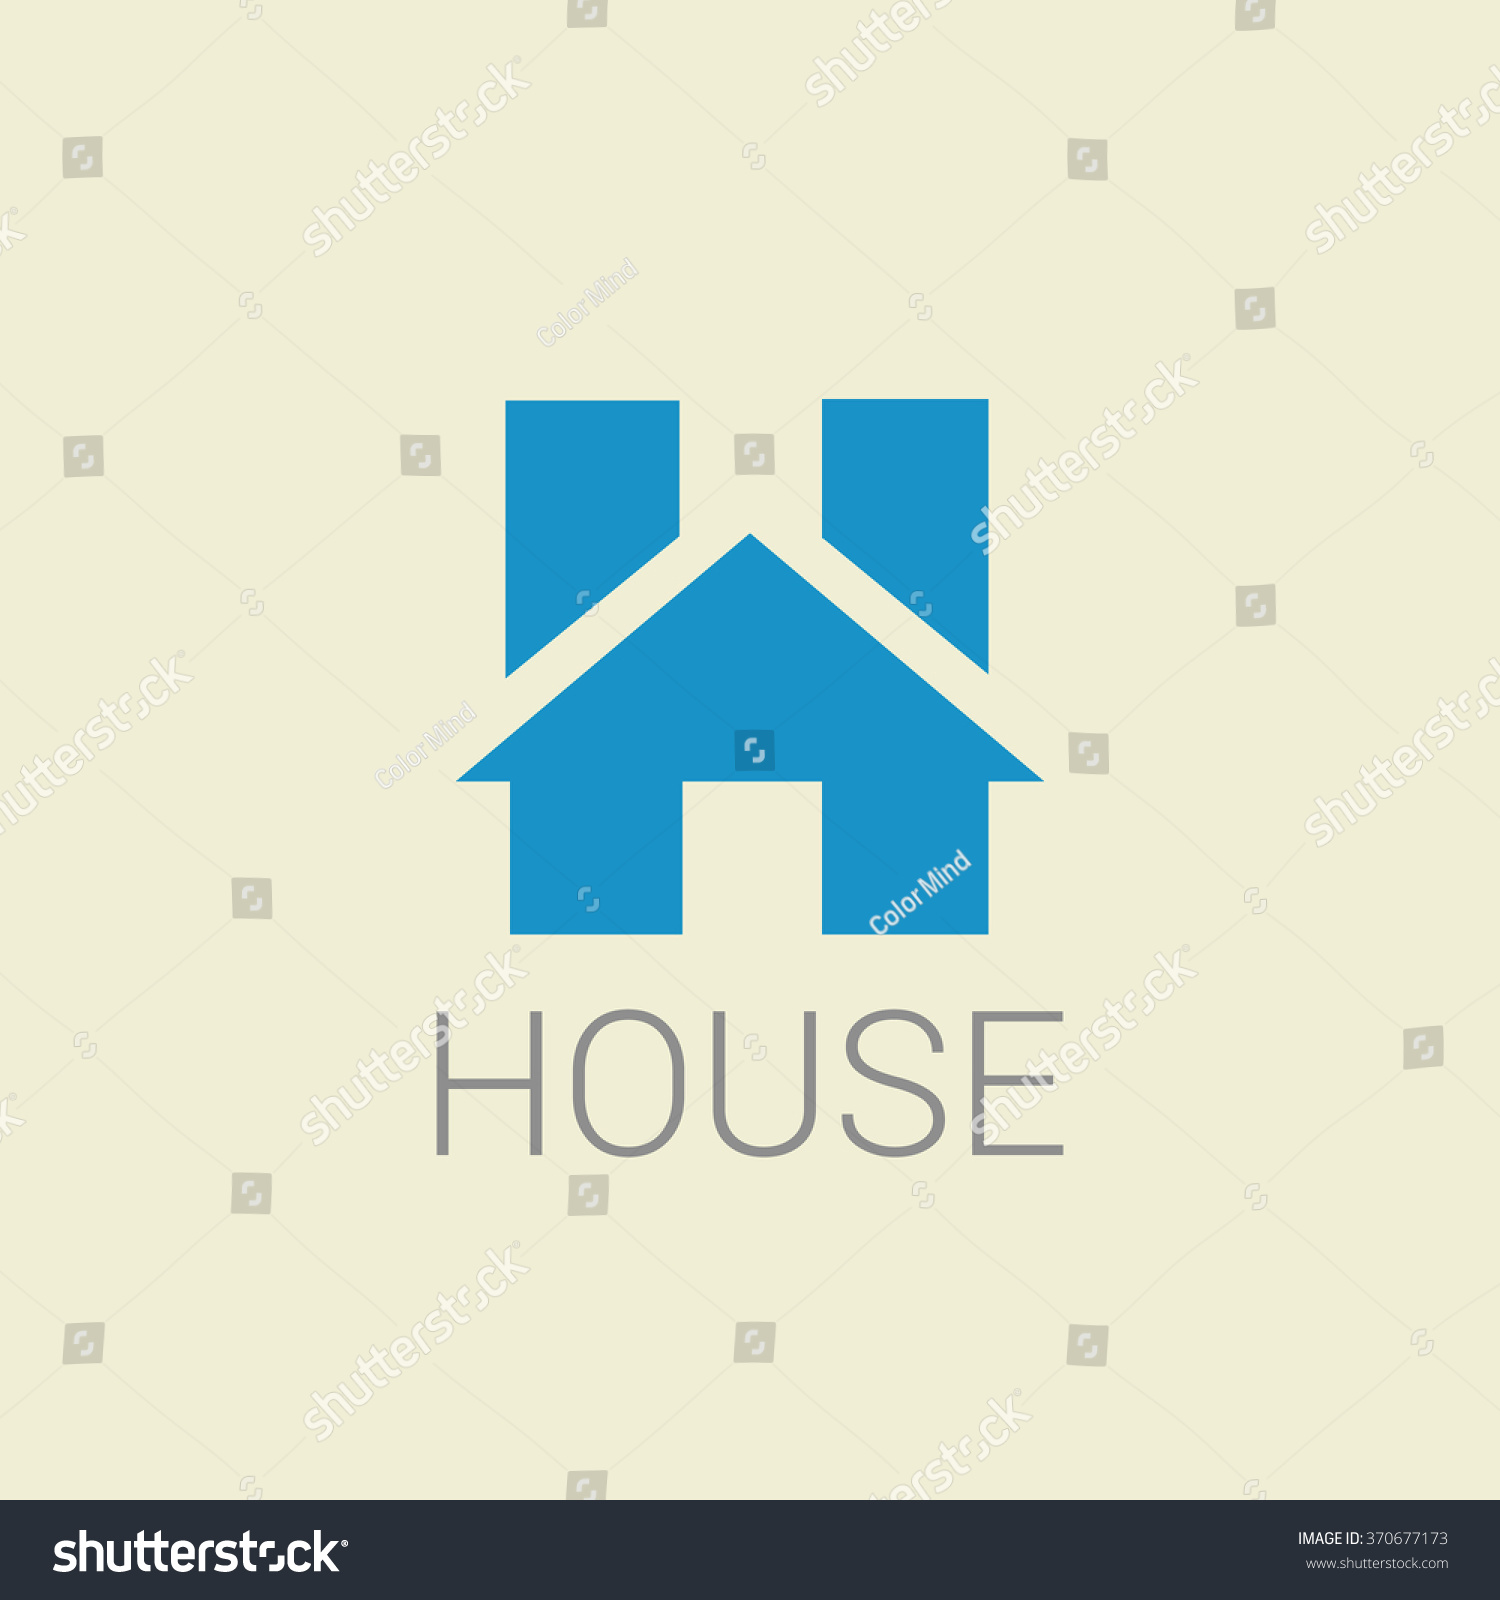 real estate letter h logo house stock vector royalty free